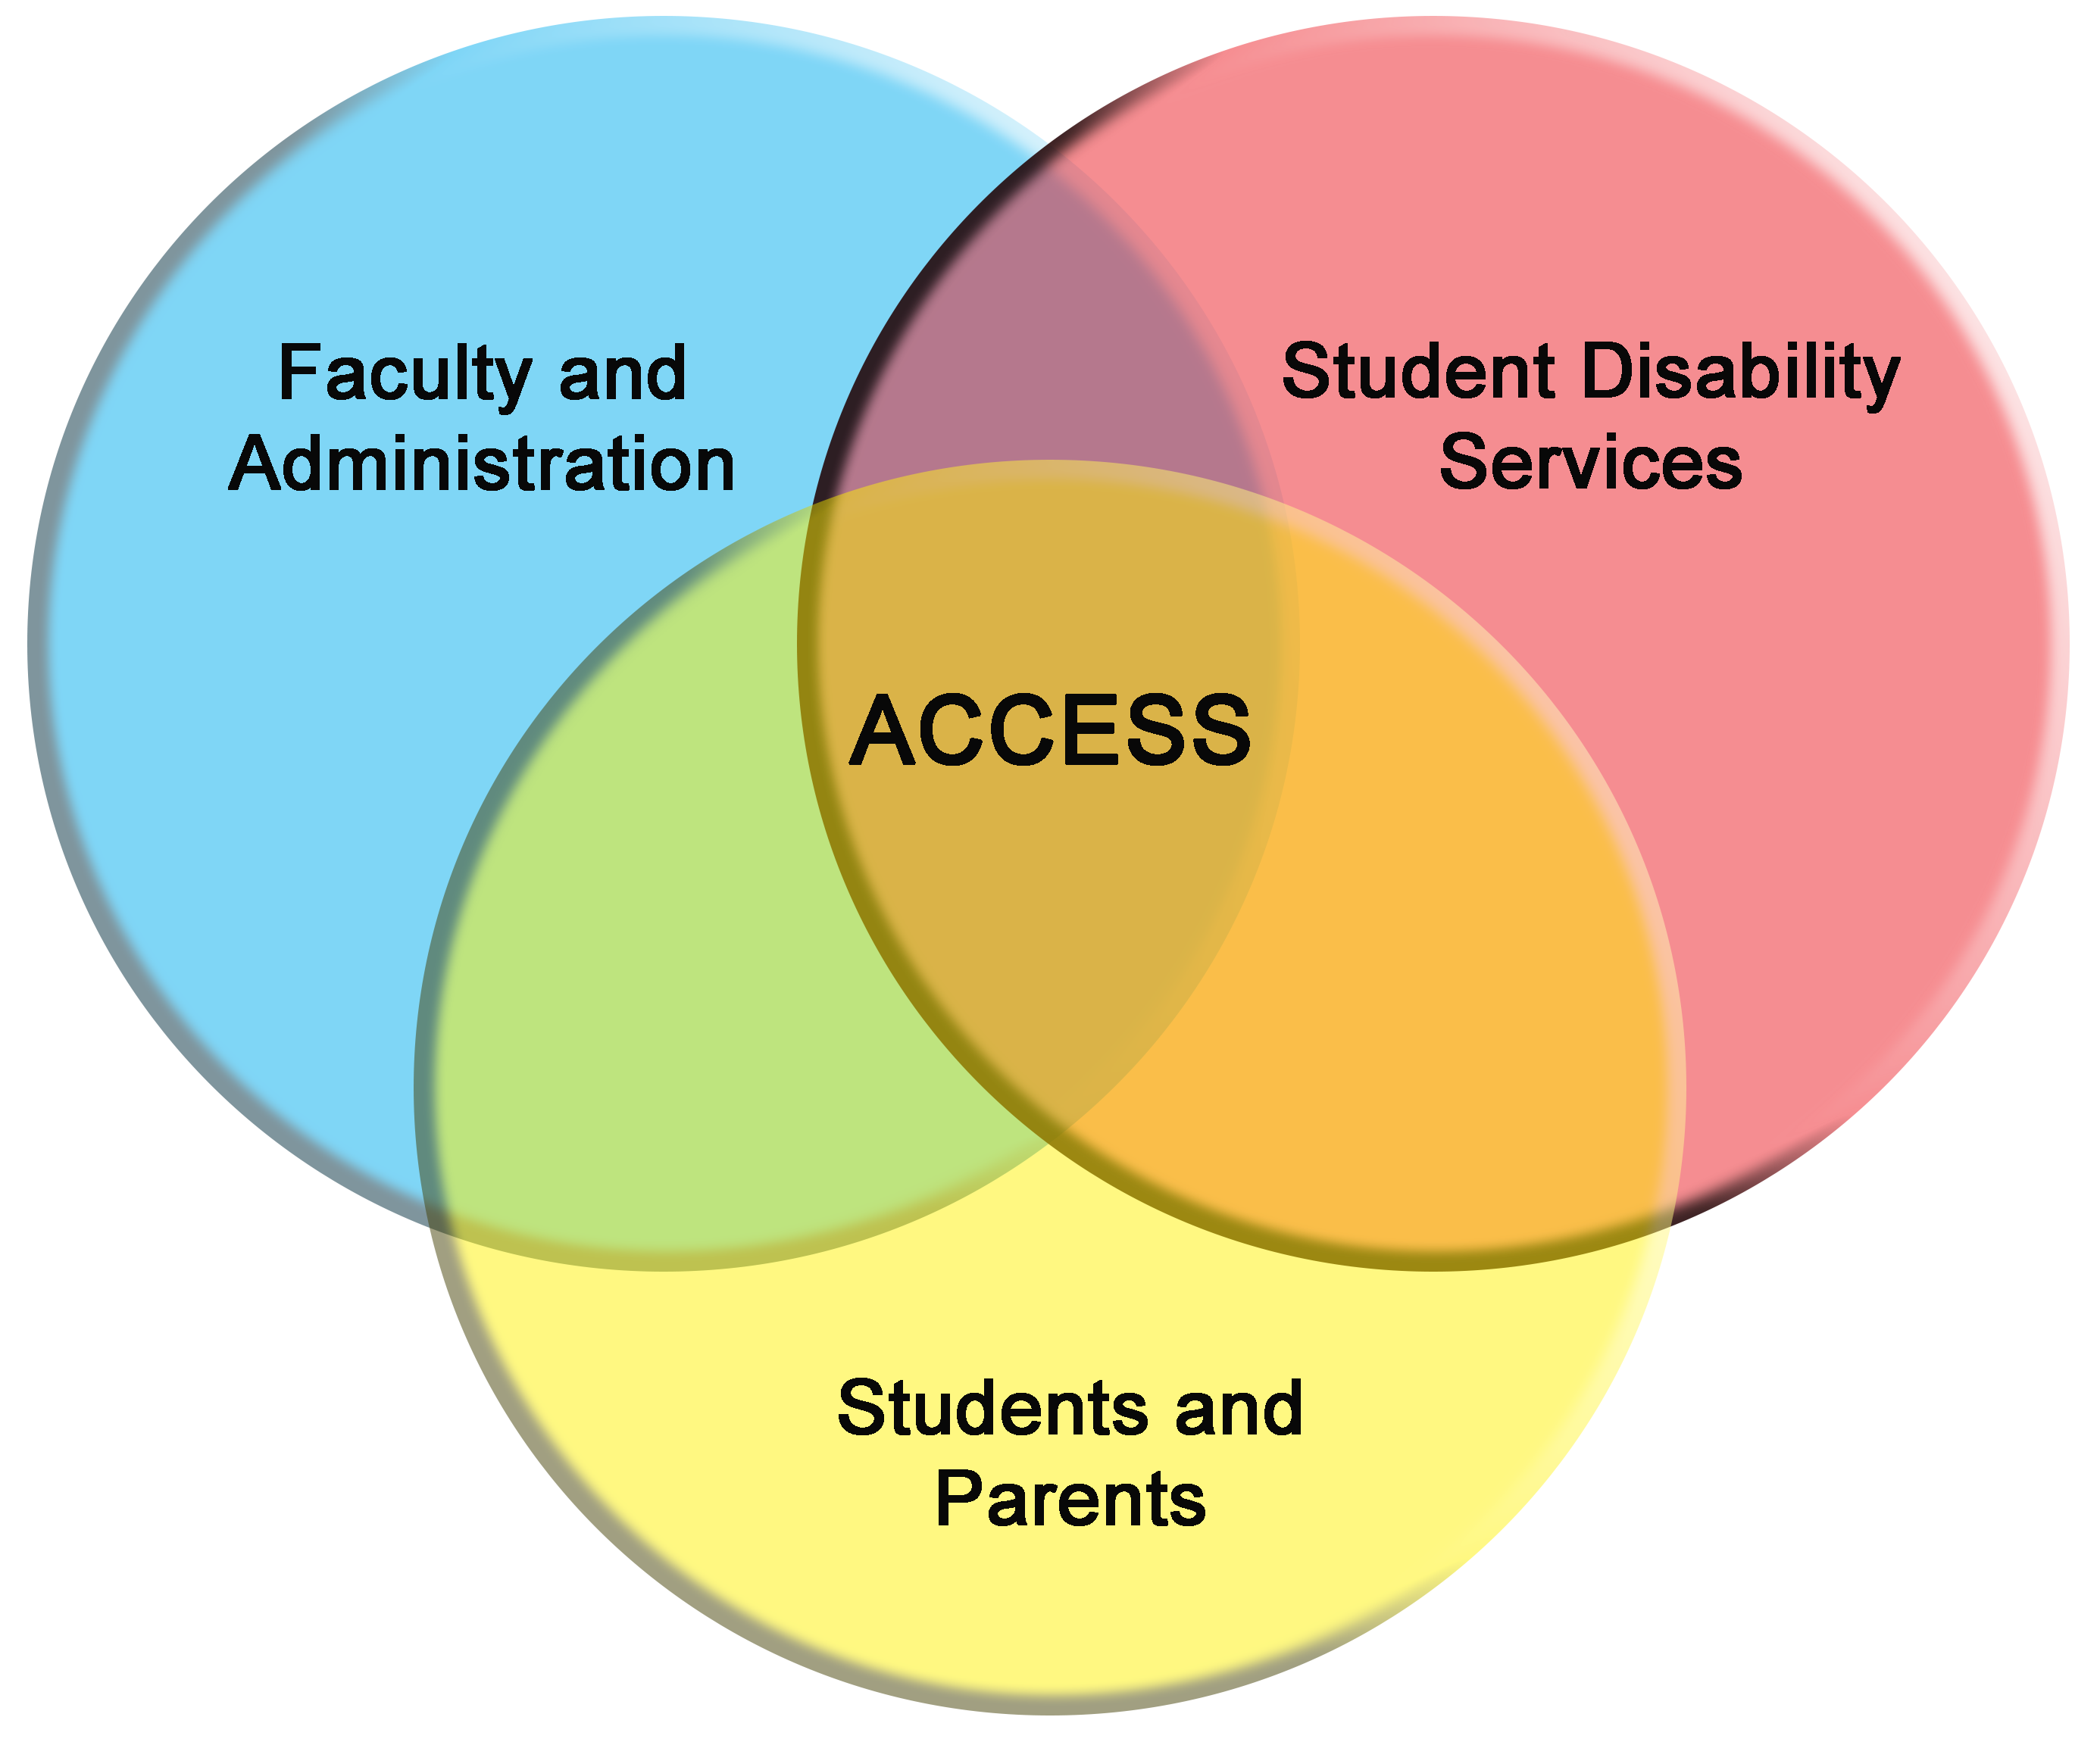 Picture shows how accessibility is interconnected between the Students and Parents, Faculty and Administration and the Student Disability Services.